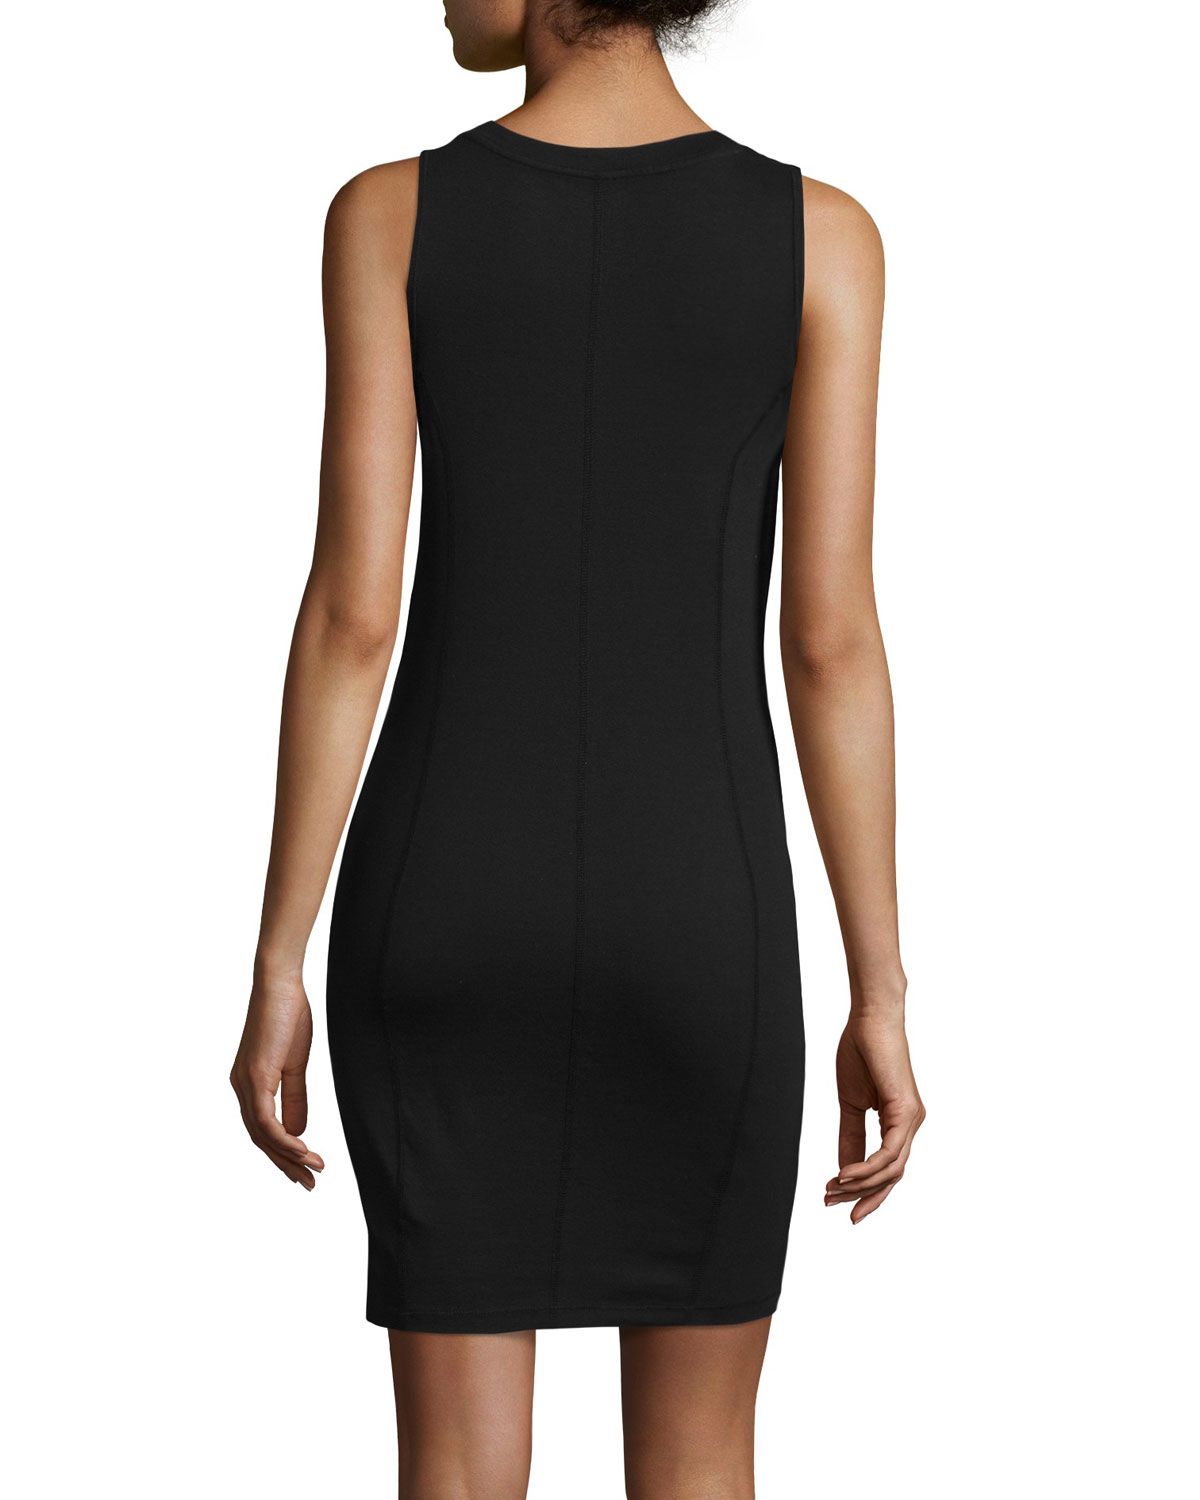 Find black jersey tank dress at ShopStyle. Shop the latest collection of black jersey tank dress from the most popular stores - all in one place.